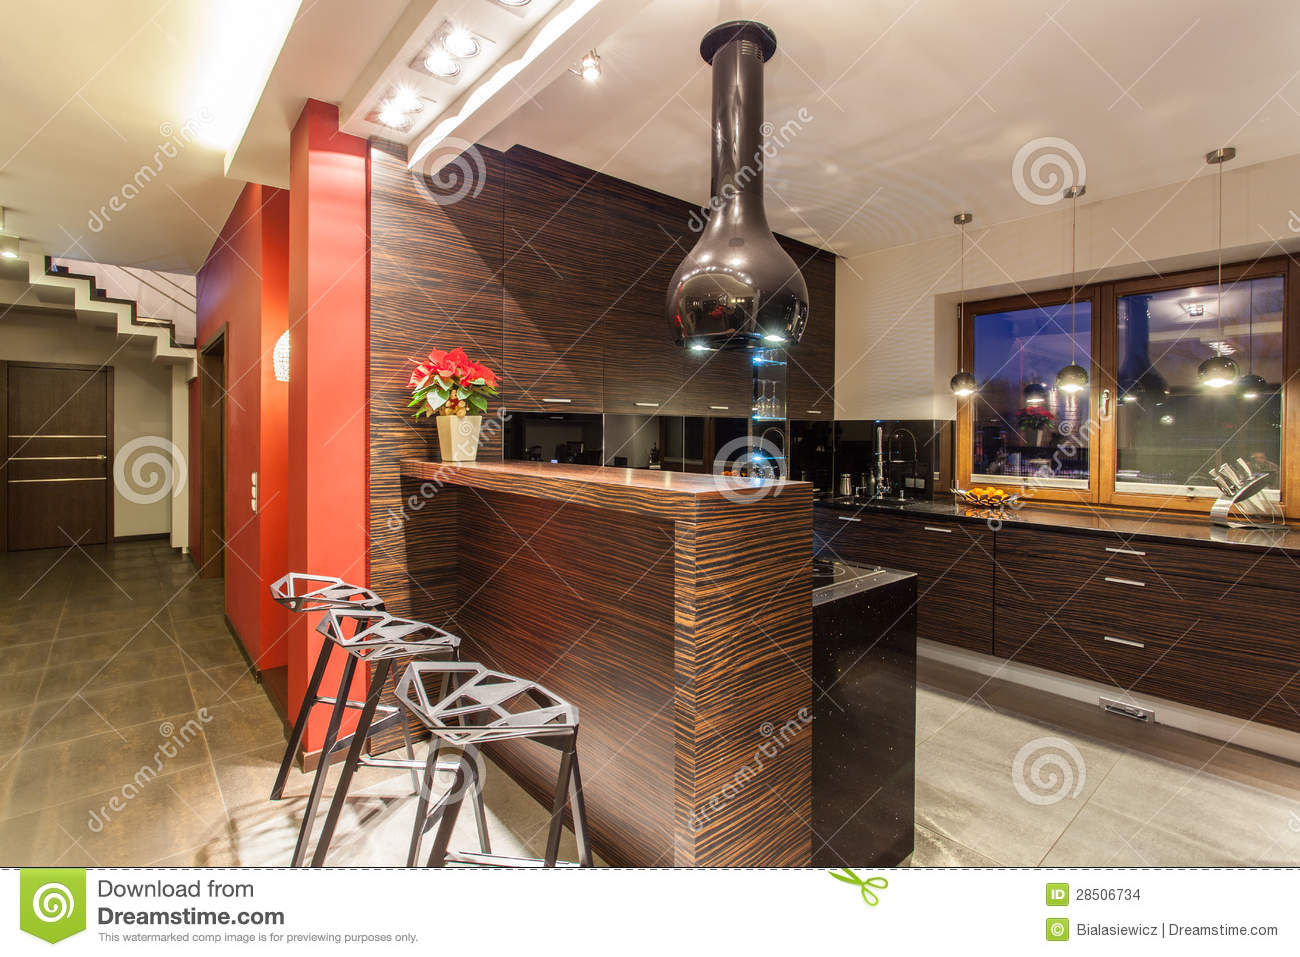 Ruby House - Kitchen With Bar Counter Stock Photo - Image of ...